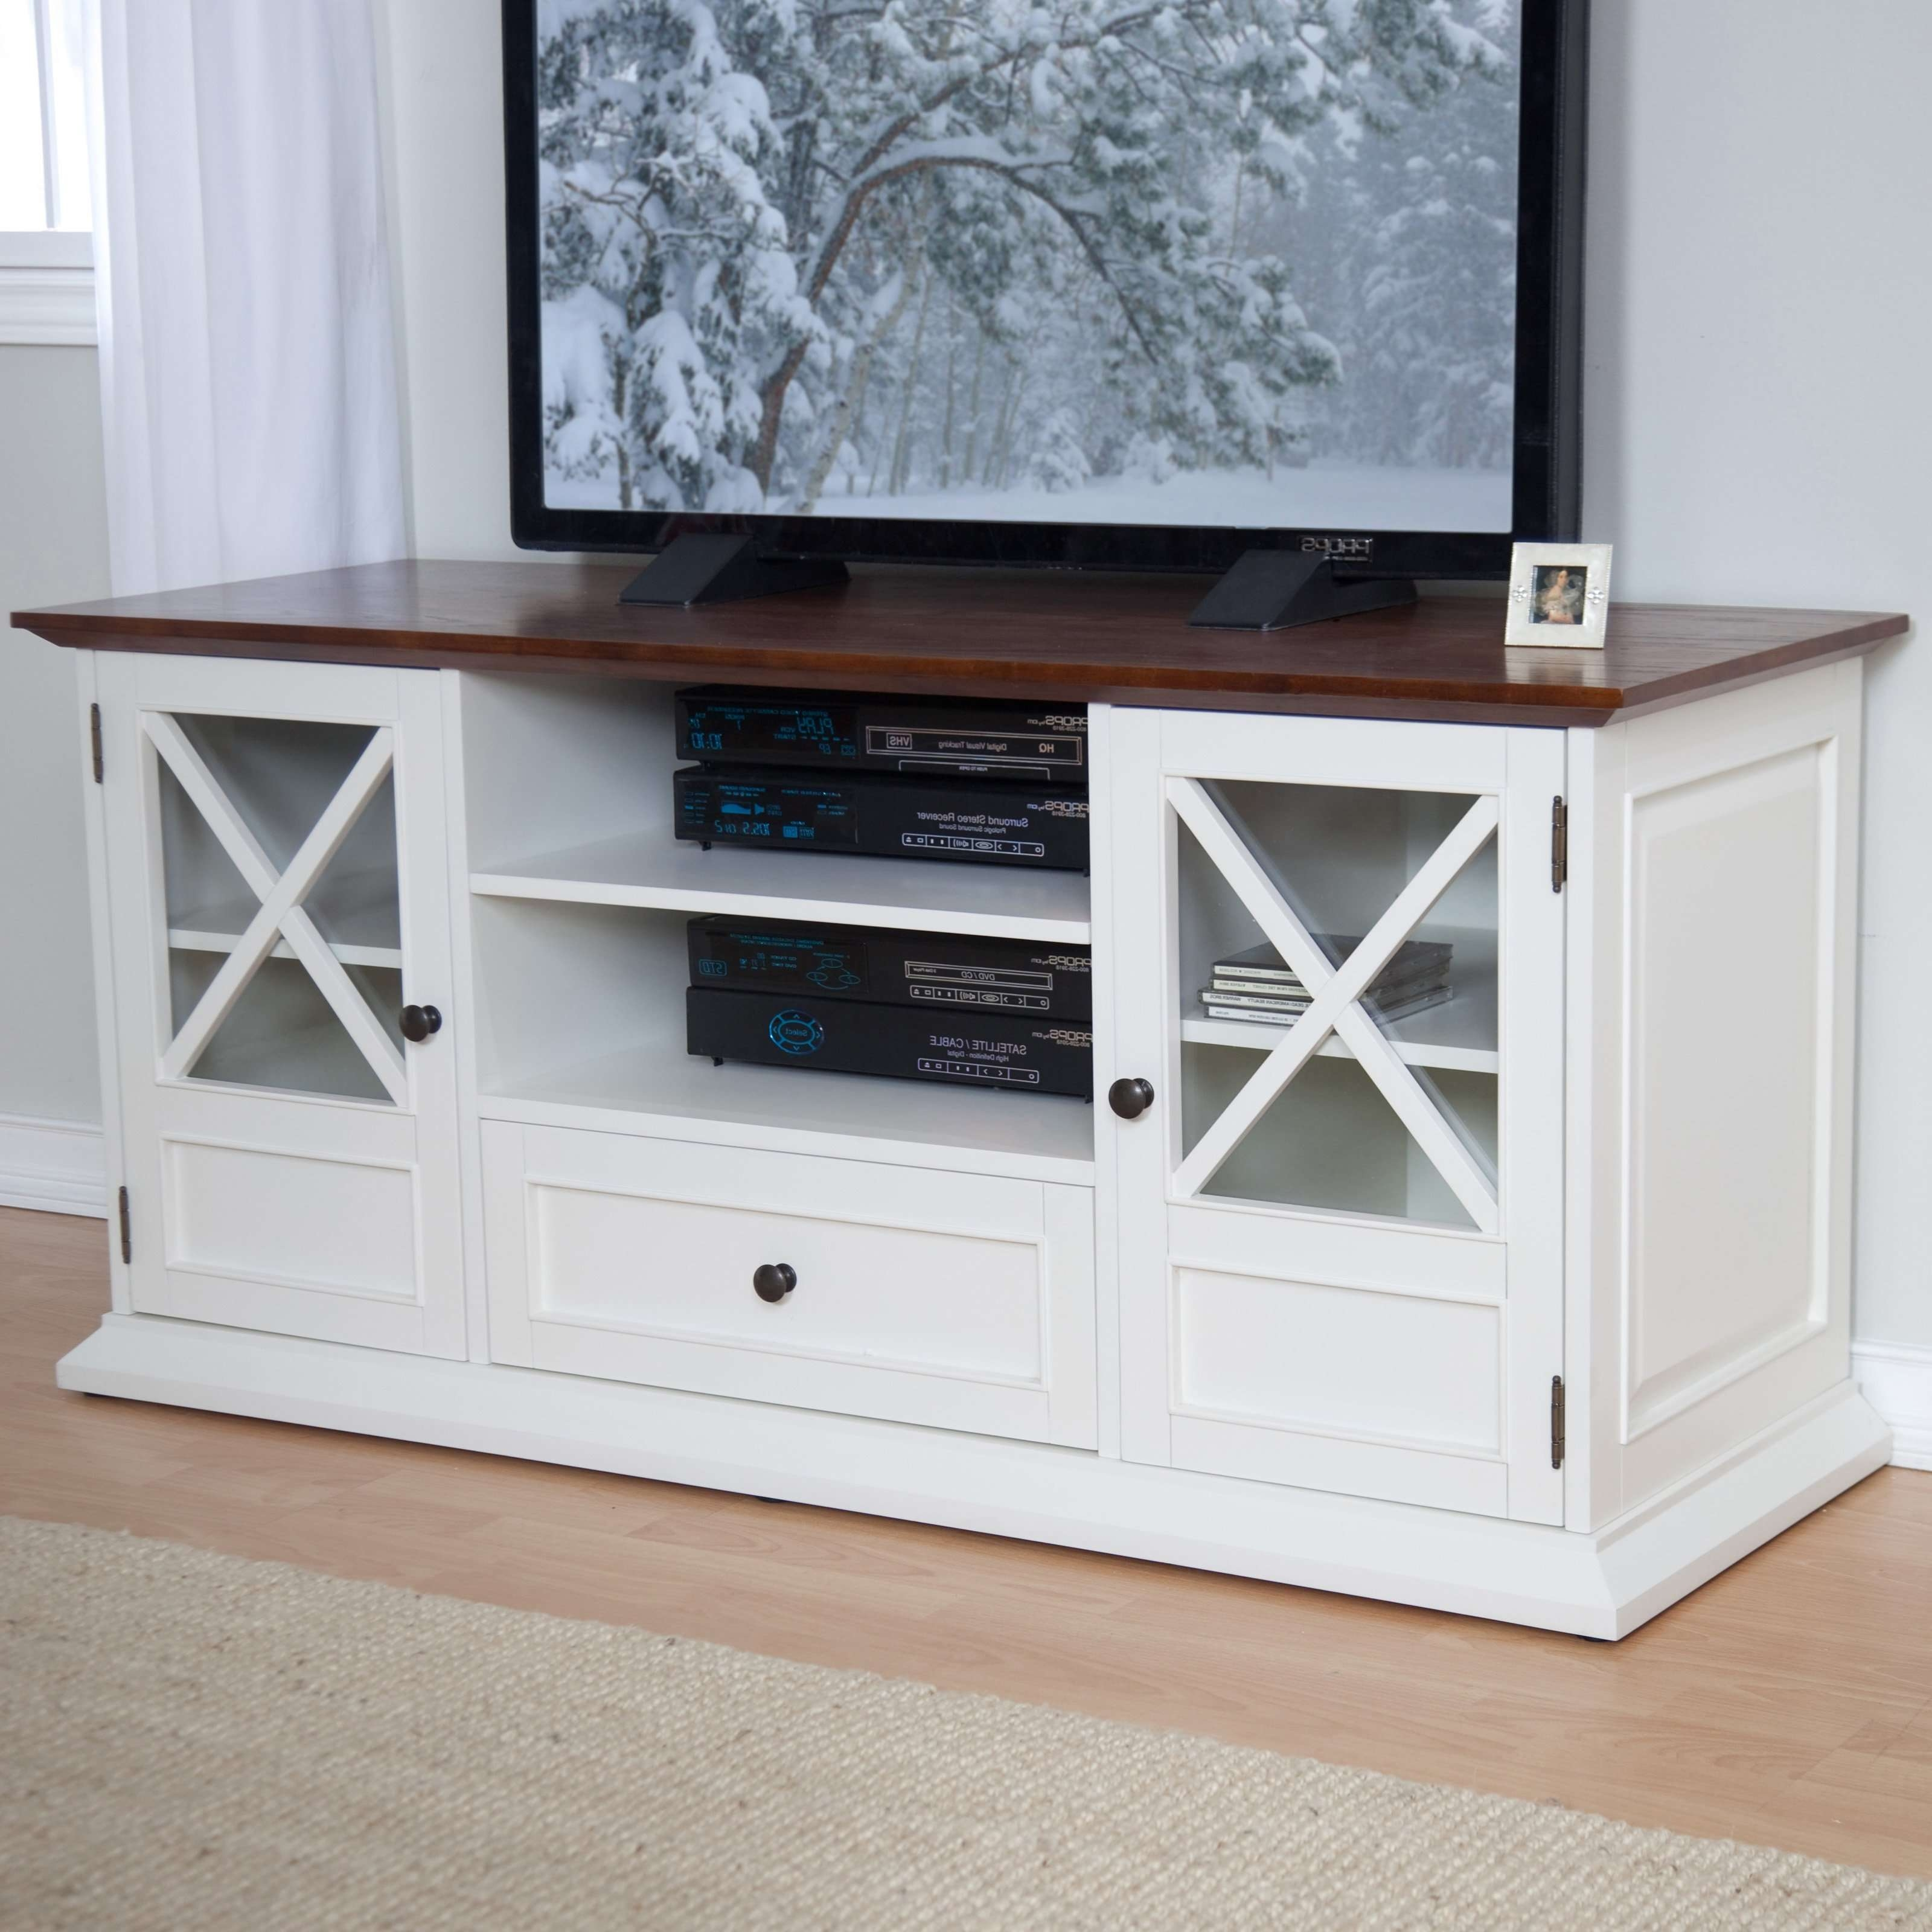 Tv Stands & Entertainment Centers | Hayneedle In White Rustic Tv Stands (View 2 of 15)